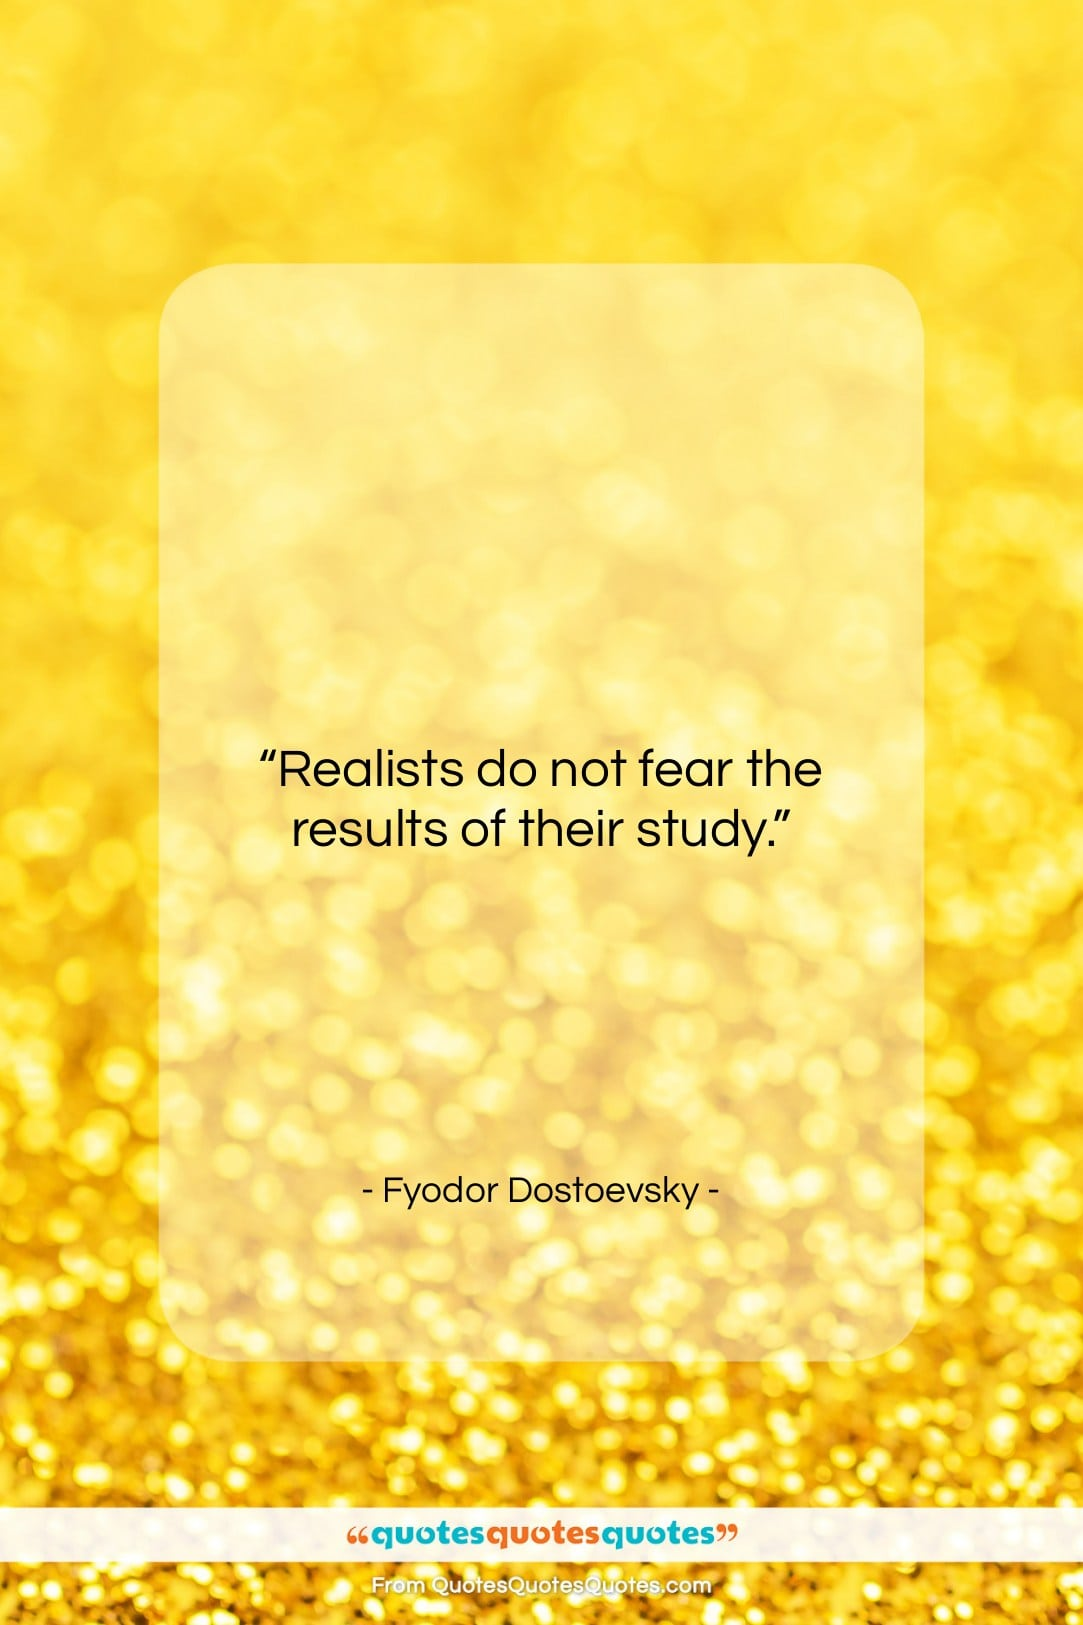 """Fyodor Dostoevsky quote: """"Realists do not fear the results of…""""- at QuotesQuotesQuotes.com"""